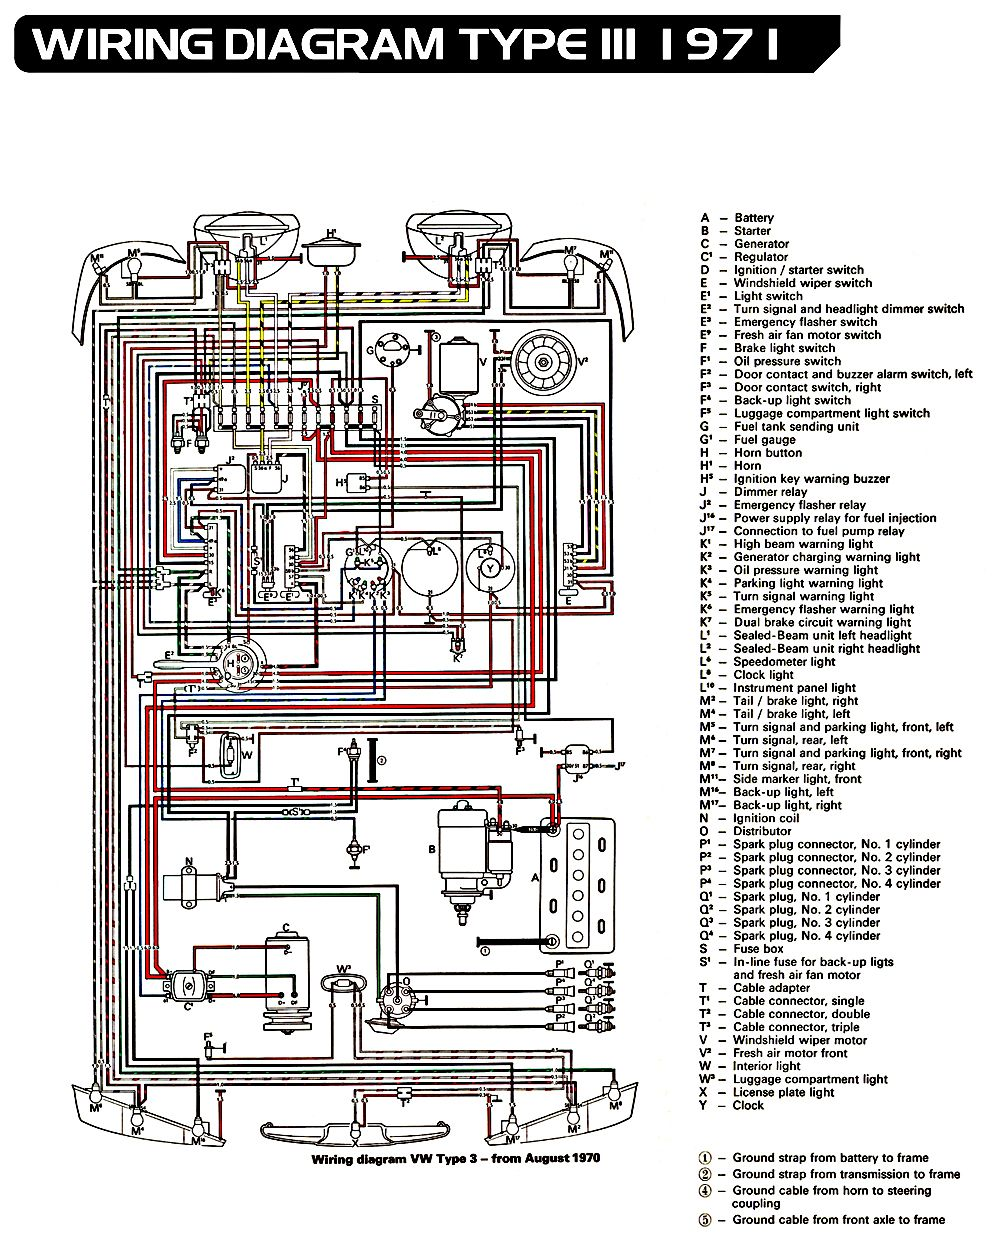 small resolution of 1971 type 3 vw wiring diagram so simple compared to a modern ecu wiring diagram 1970 vw squareback